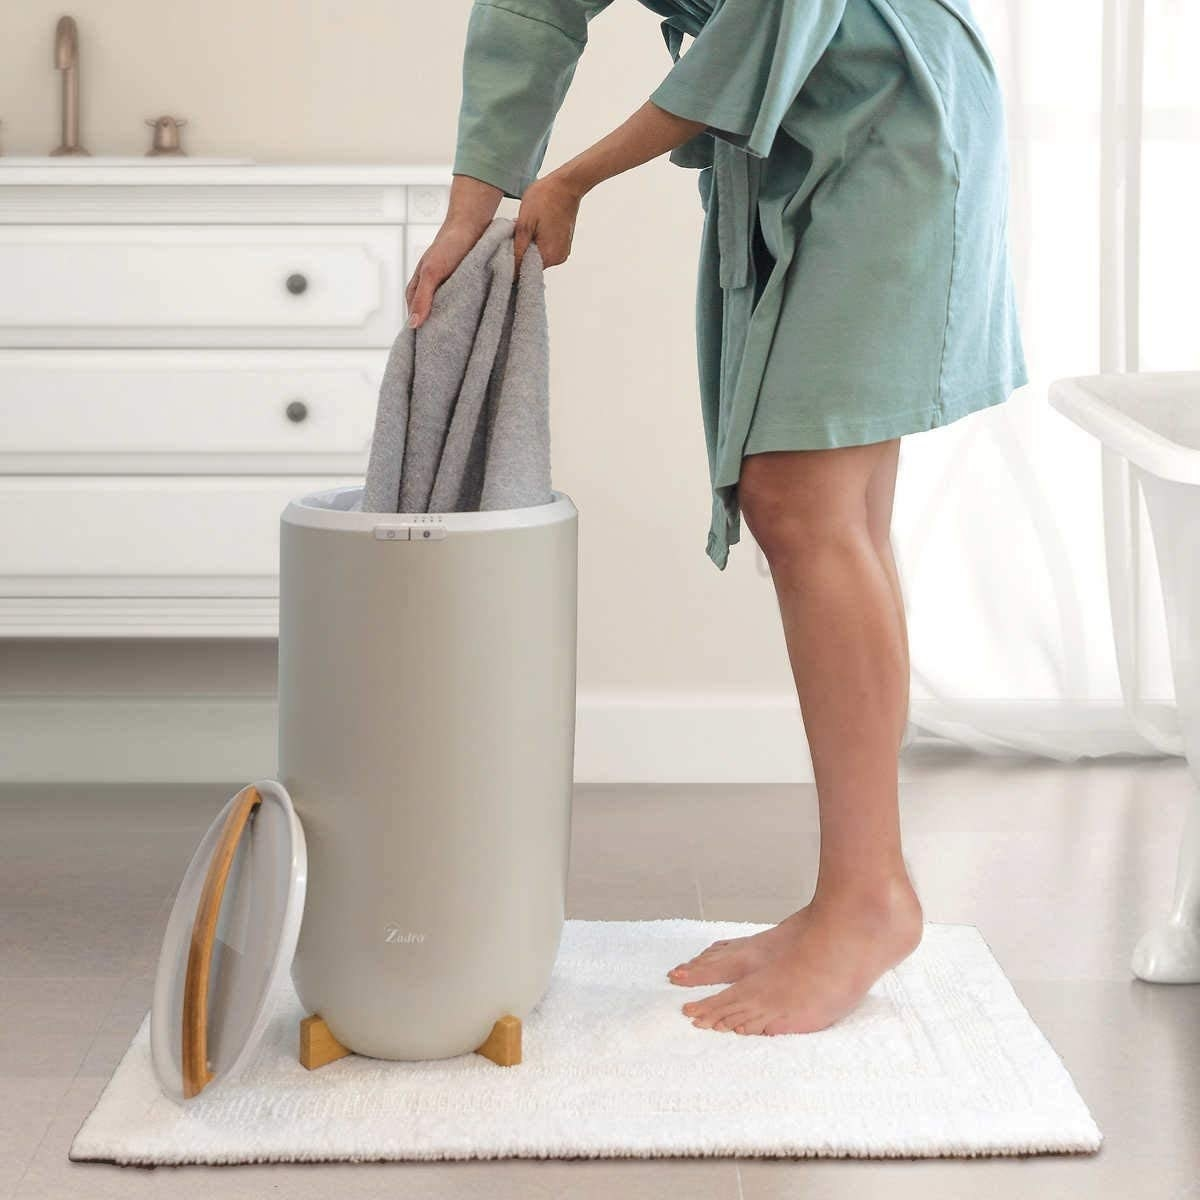 A model pulling a towel out of the silver towel warmer